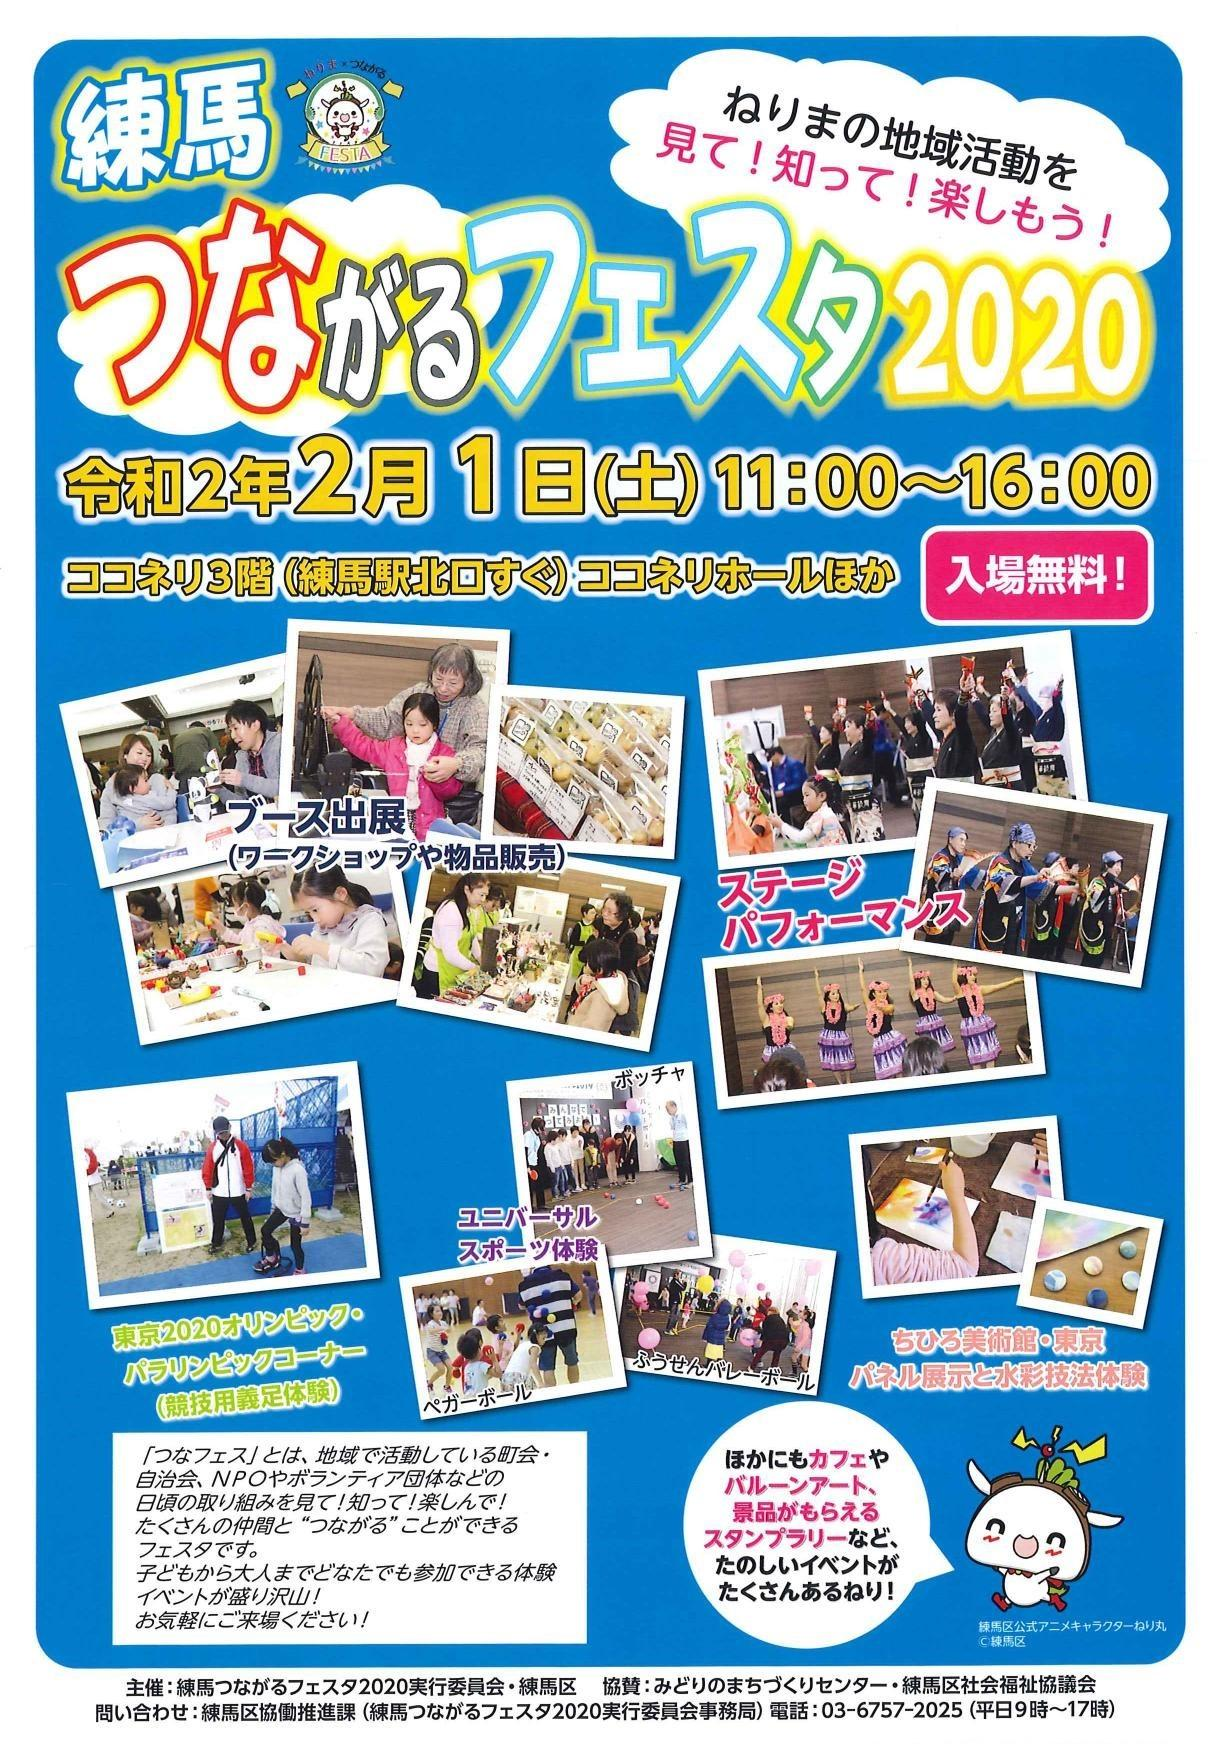 Festival 2020 where Nerima leads to